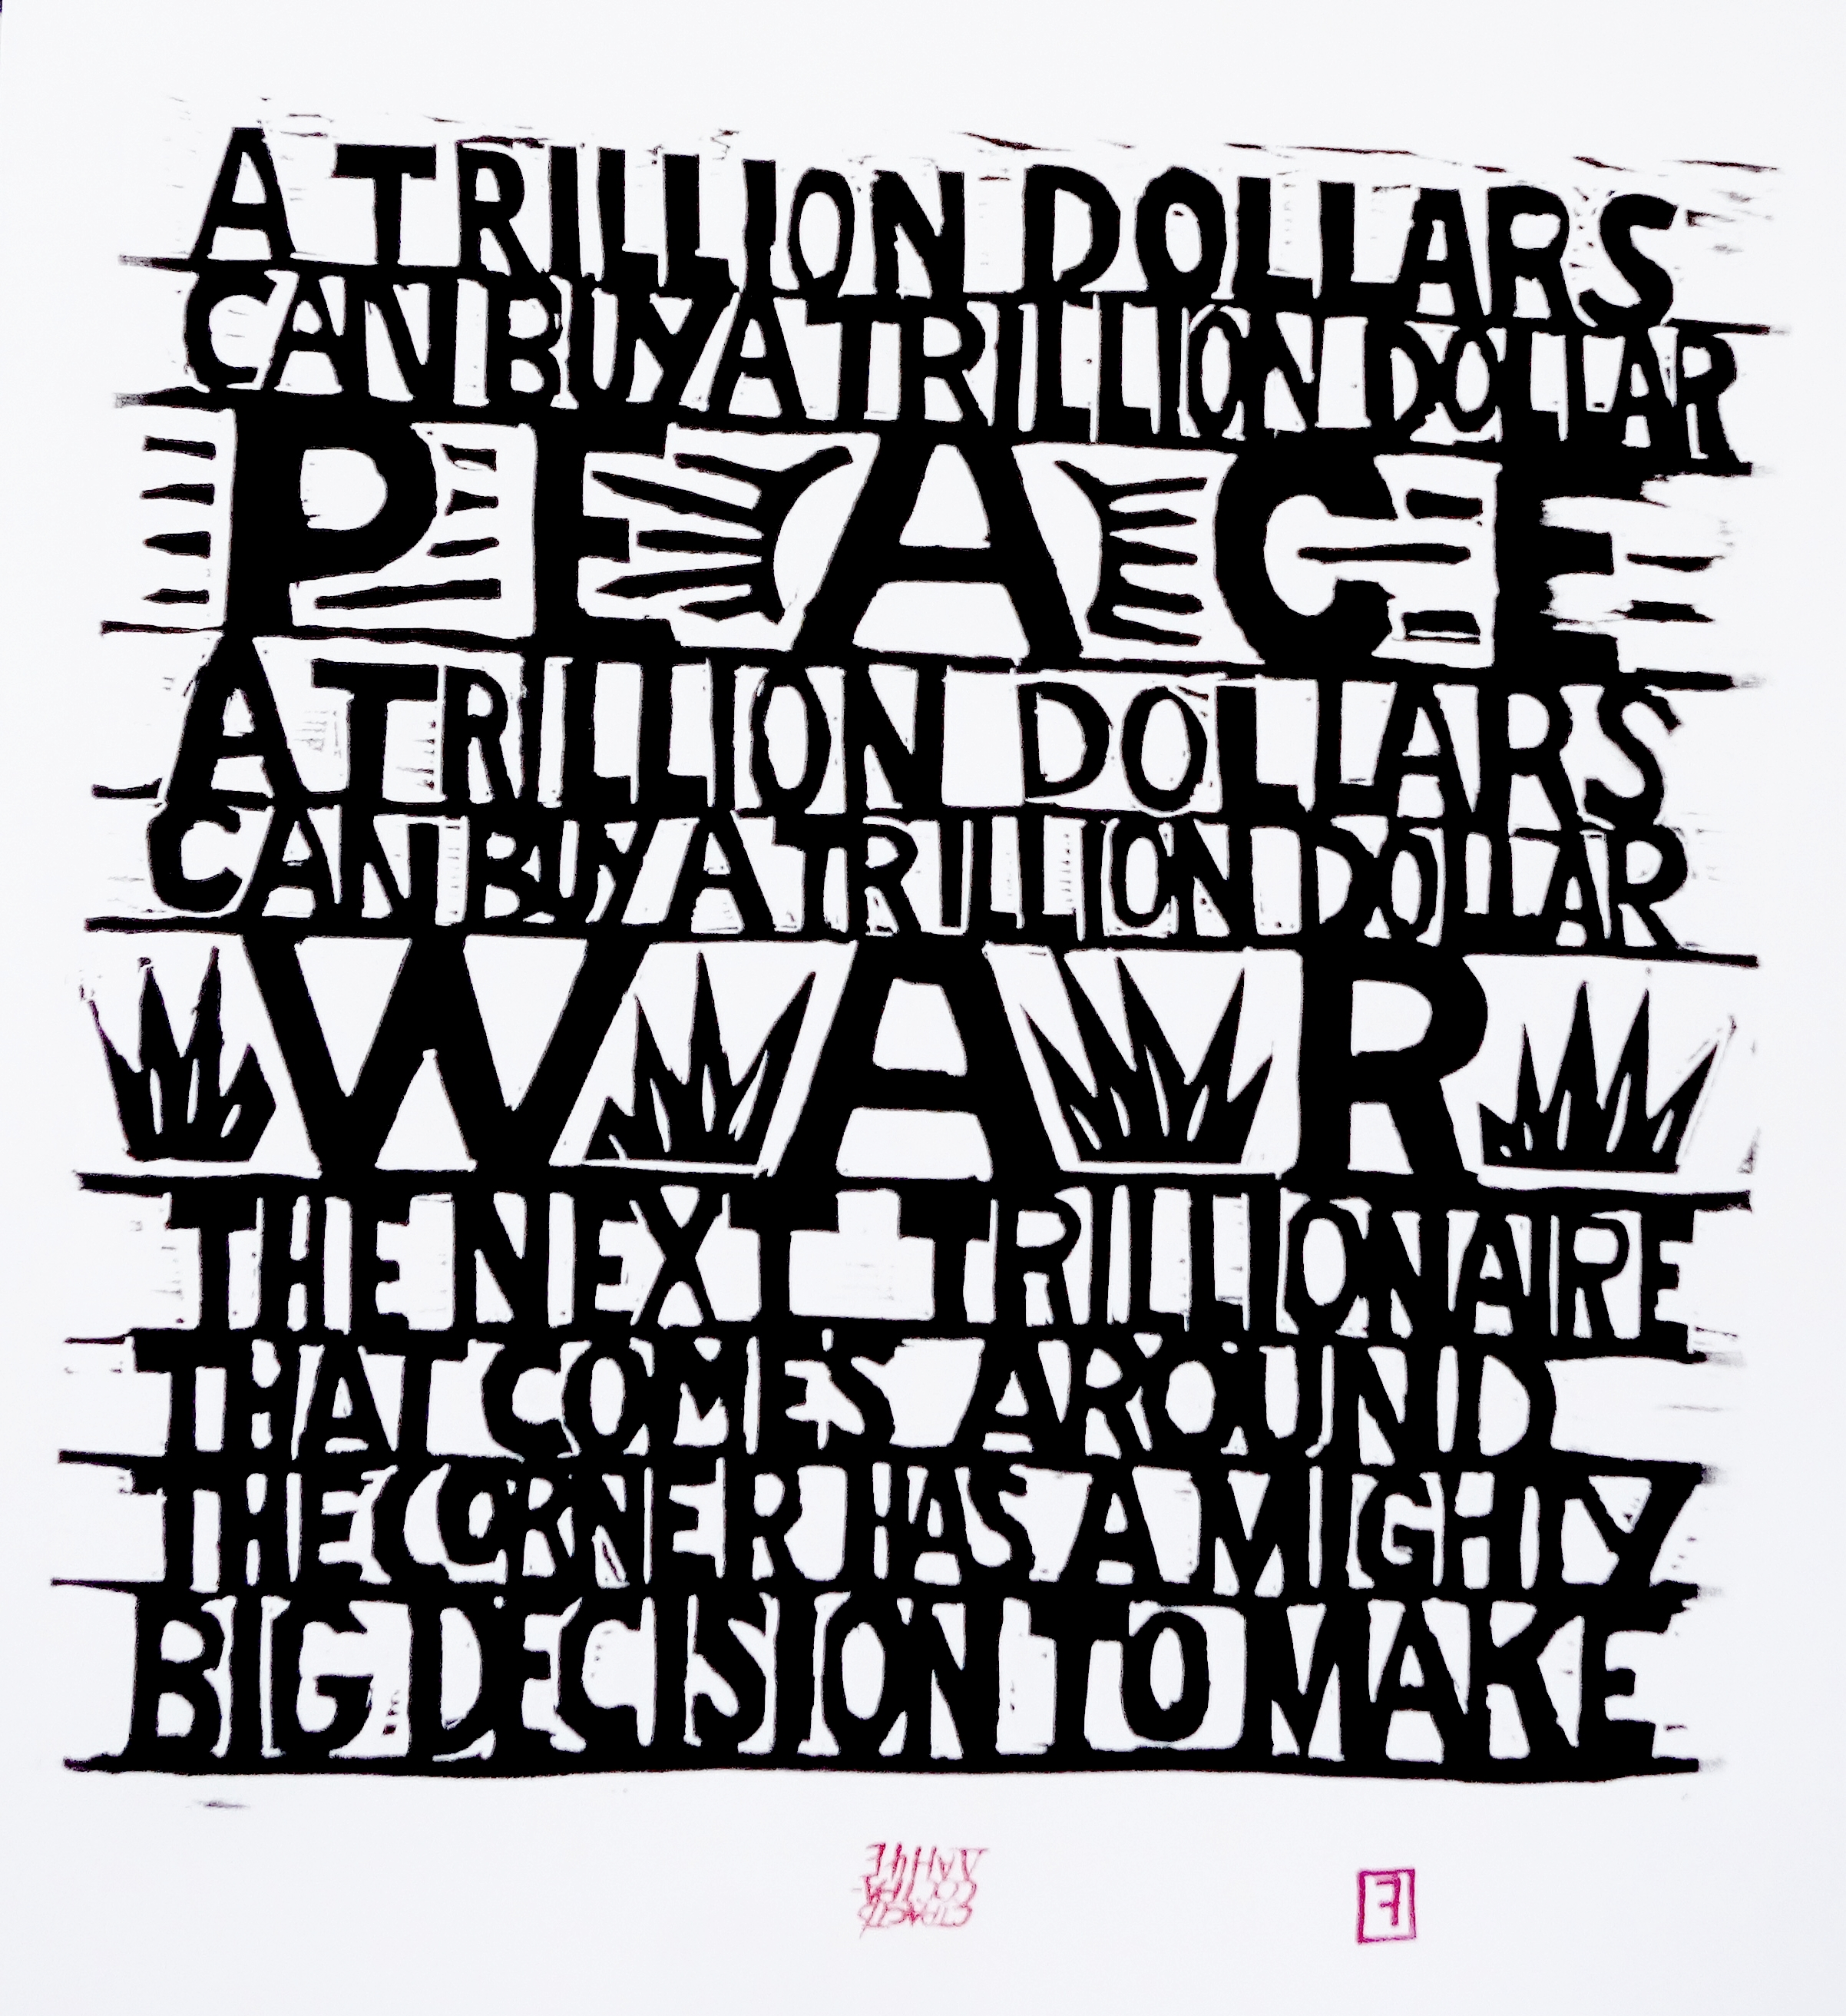 A Trillion Dollars...